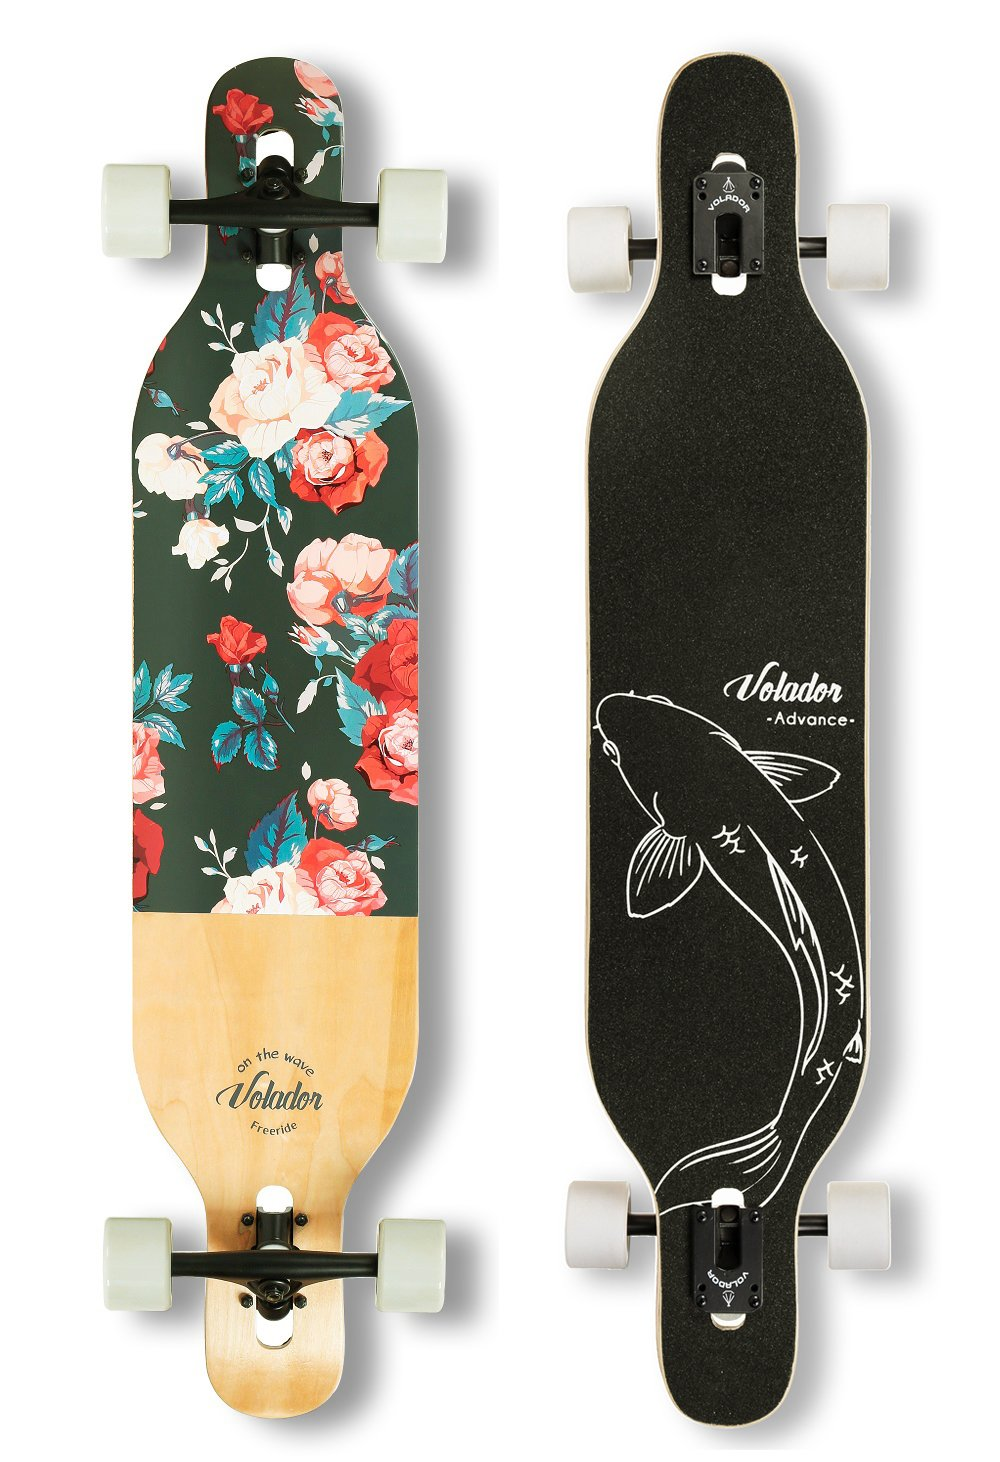 VOLADOR 42inch Freeride Longboard Complete Cruiser (Drop Through Deck - Camber concave)(Floral Vintage) by VOLADOR